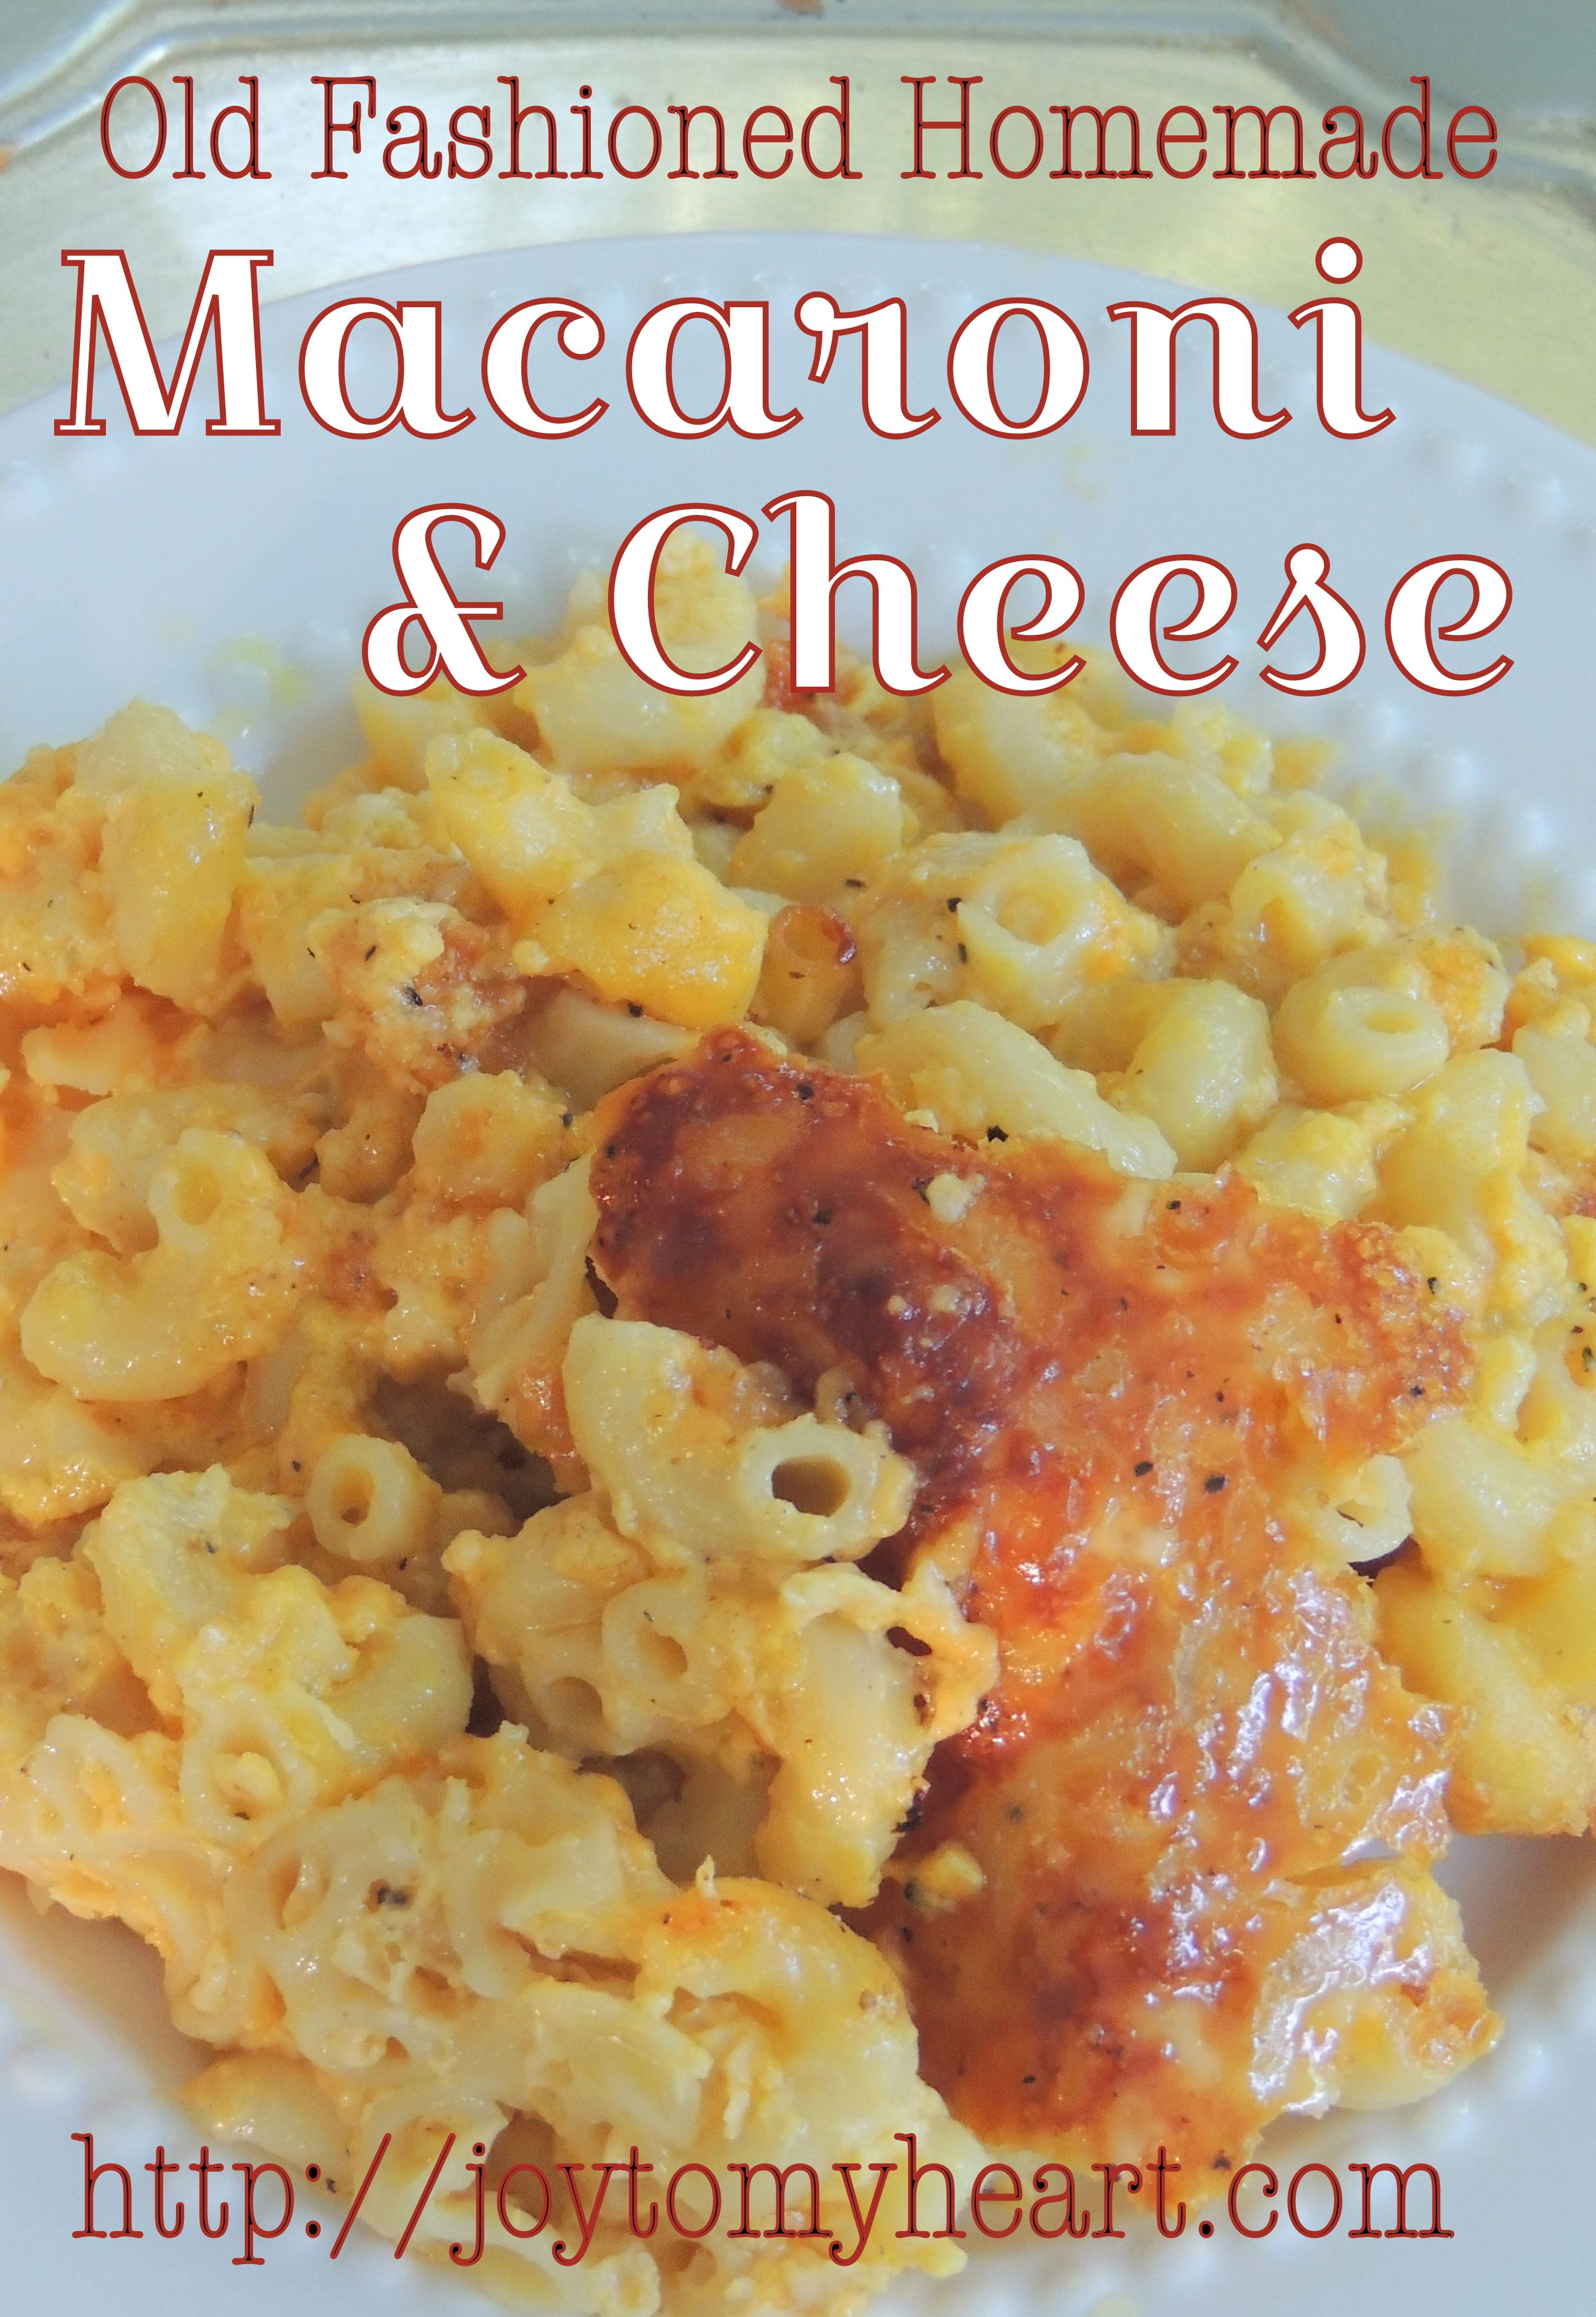 Old Fashioned Homemade macaroni and cheese